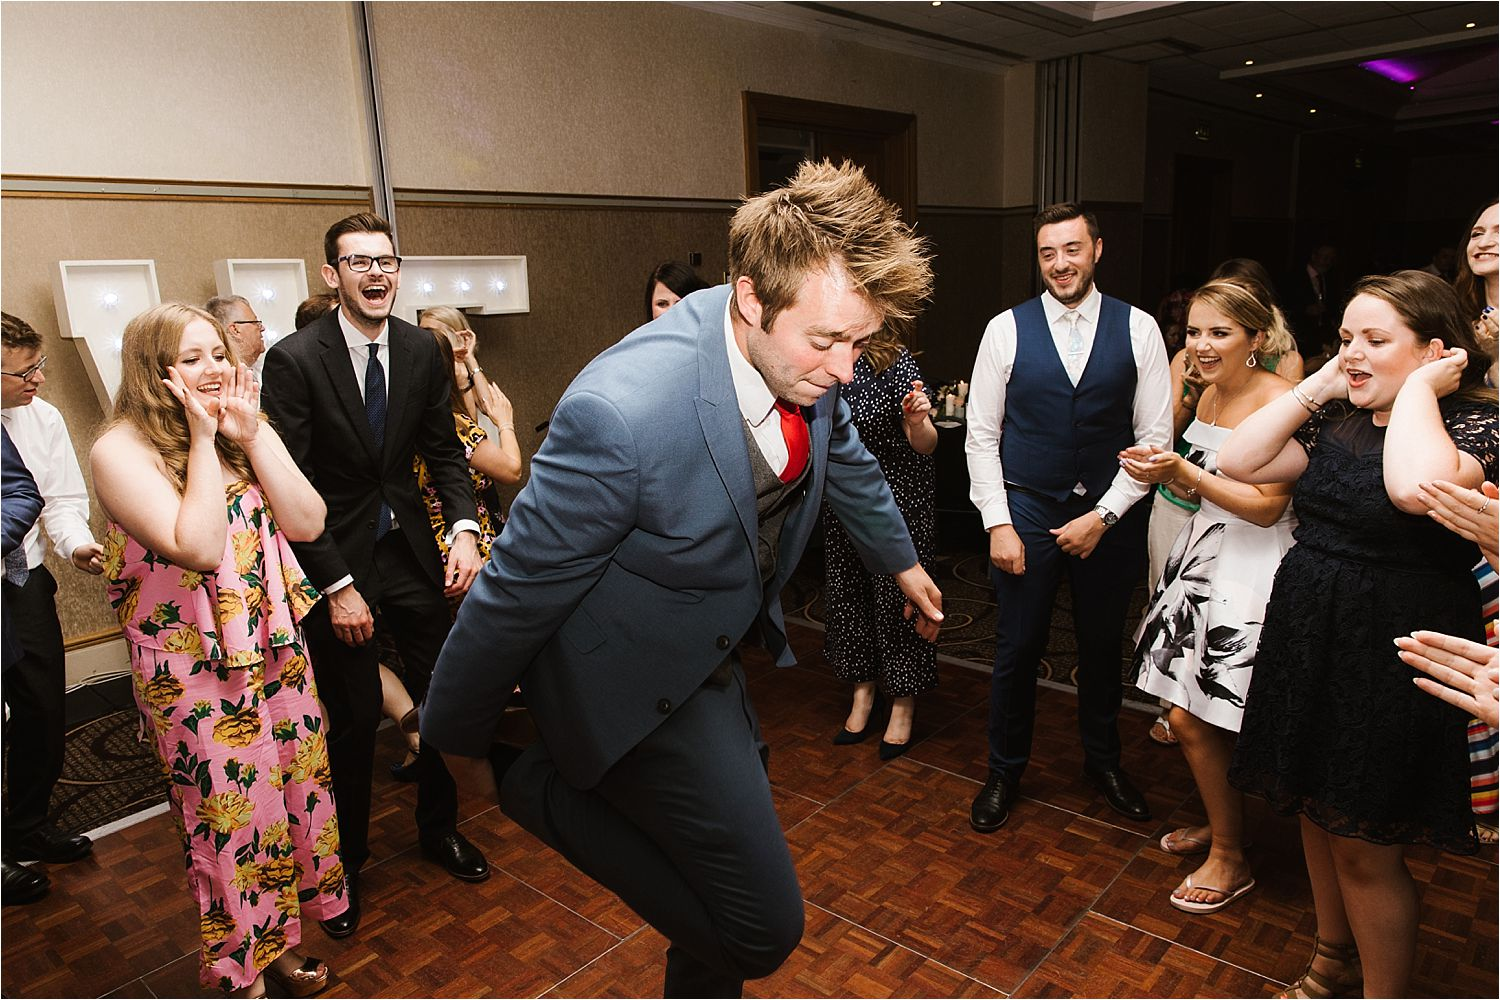 Dancing usher takes centre stage at Low Wood Bay evening wedding reception